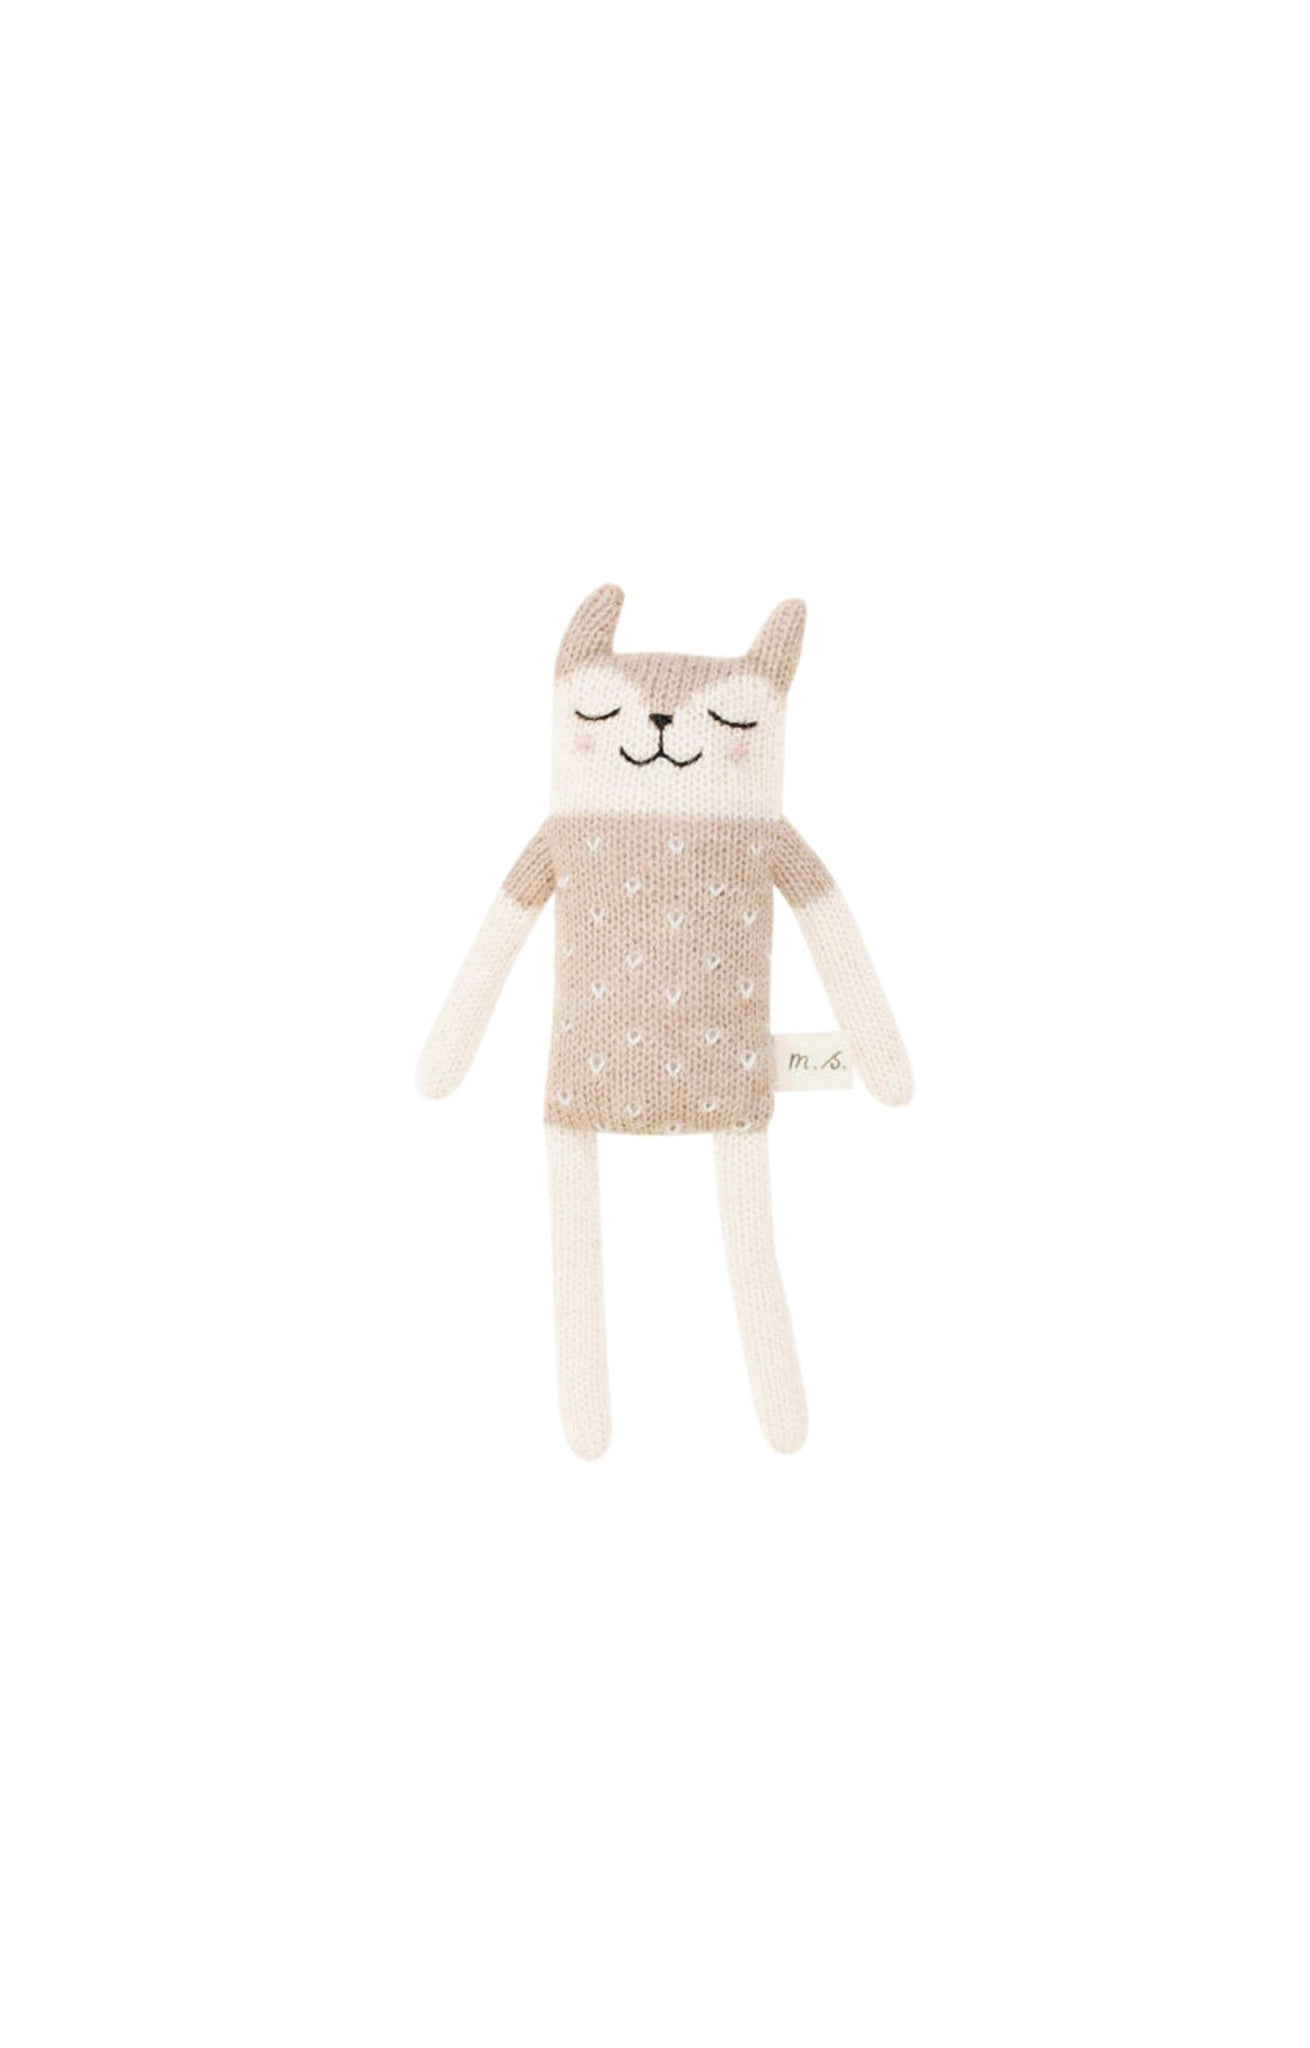 Main Sauvage fawn knit toy Sand